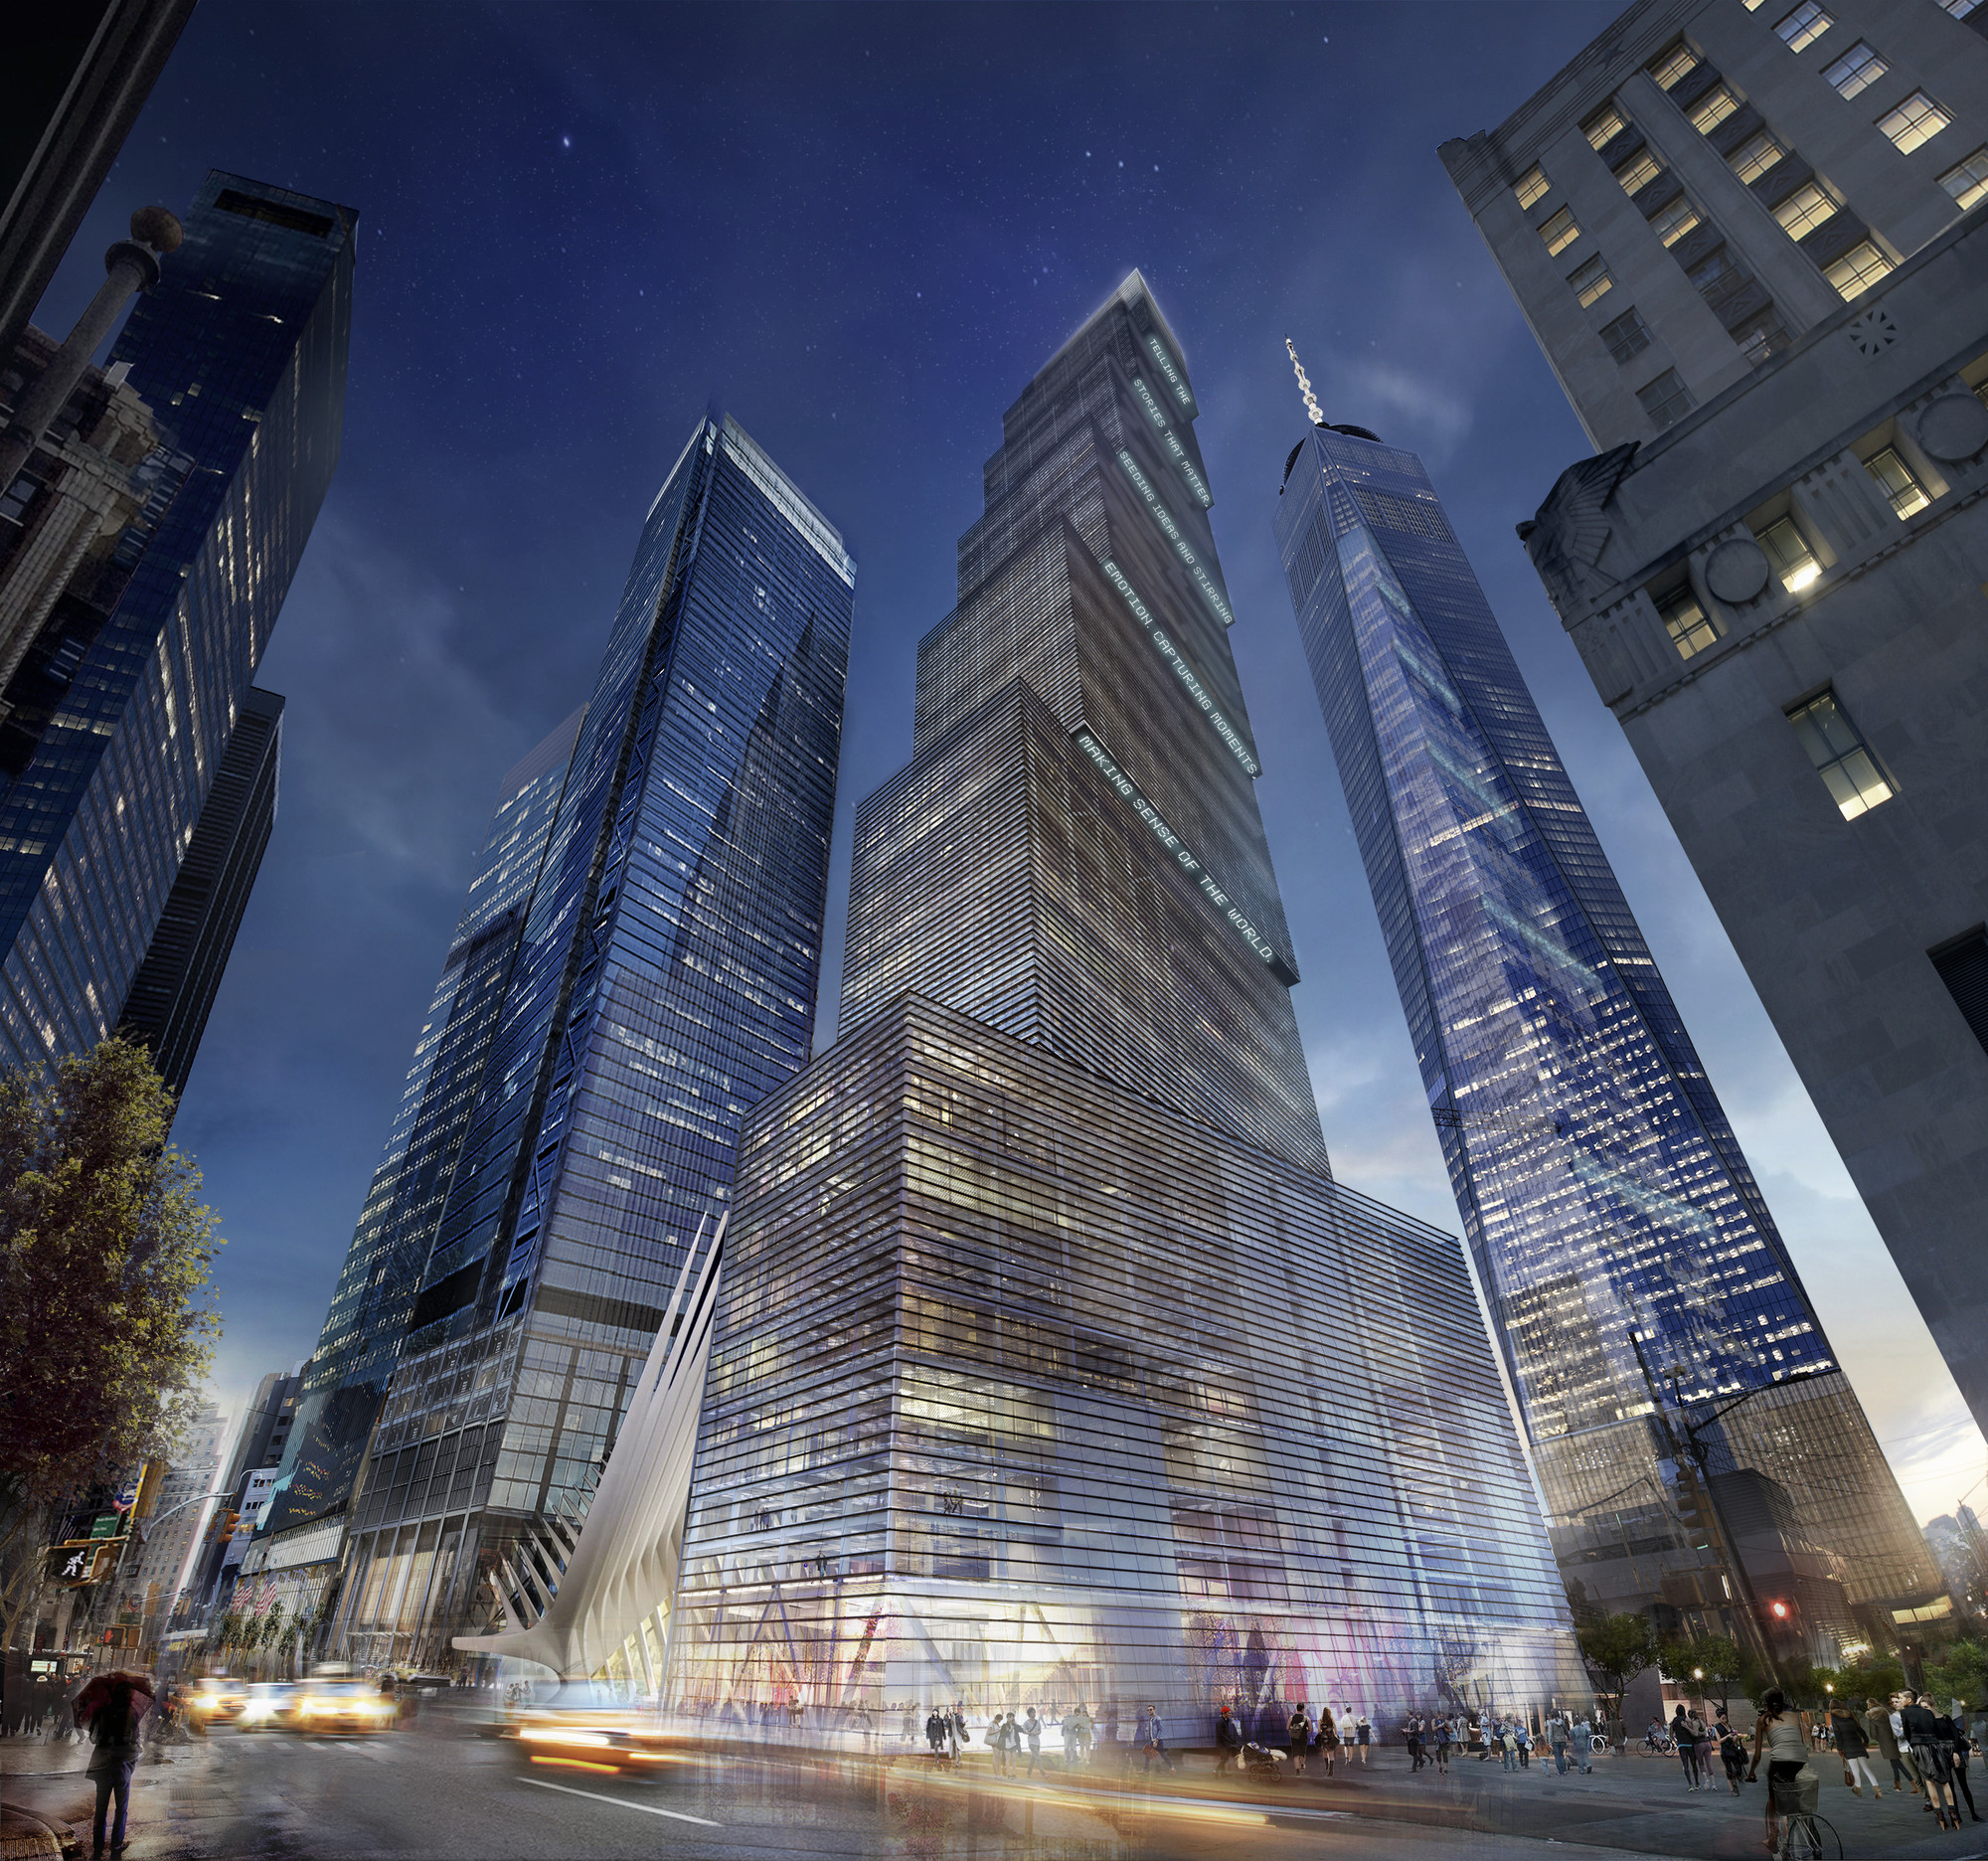 BIG Replaces Foster, Unveils Plans for 2 World Trade Center, © DBOX, Courtesy of BIG